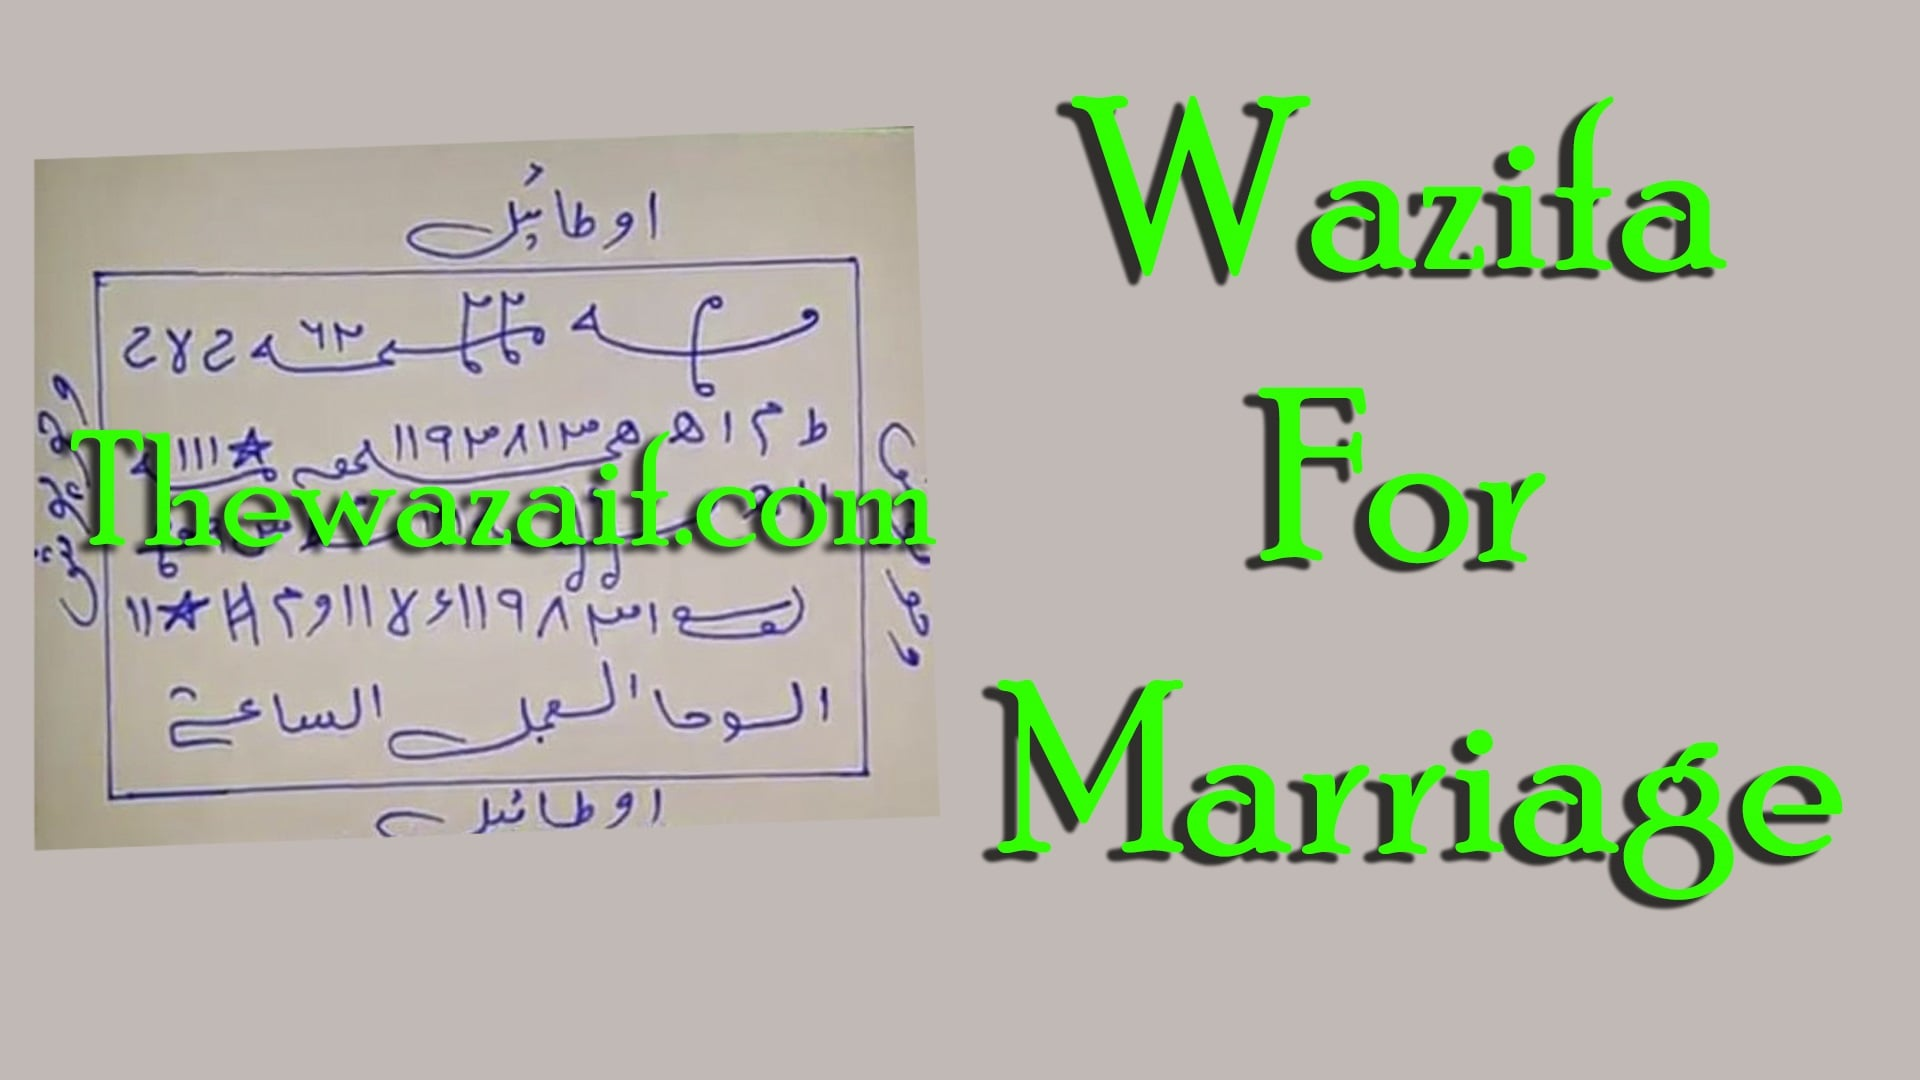 Guaranteed Wazifa For Marriage - Dua For Marriage In 3 Days